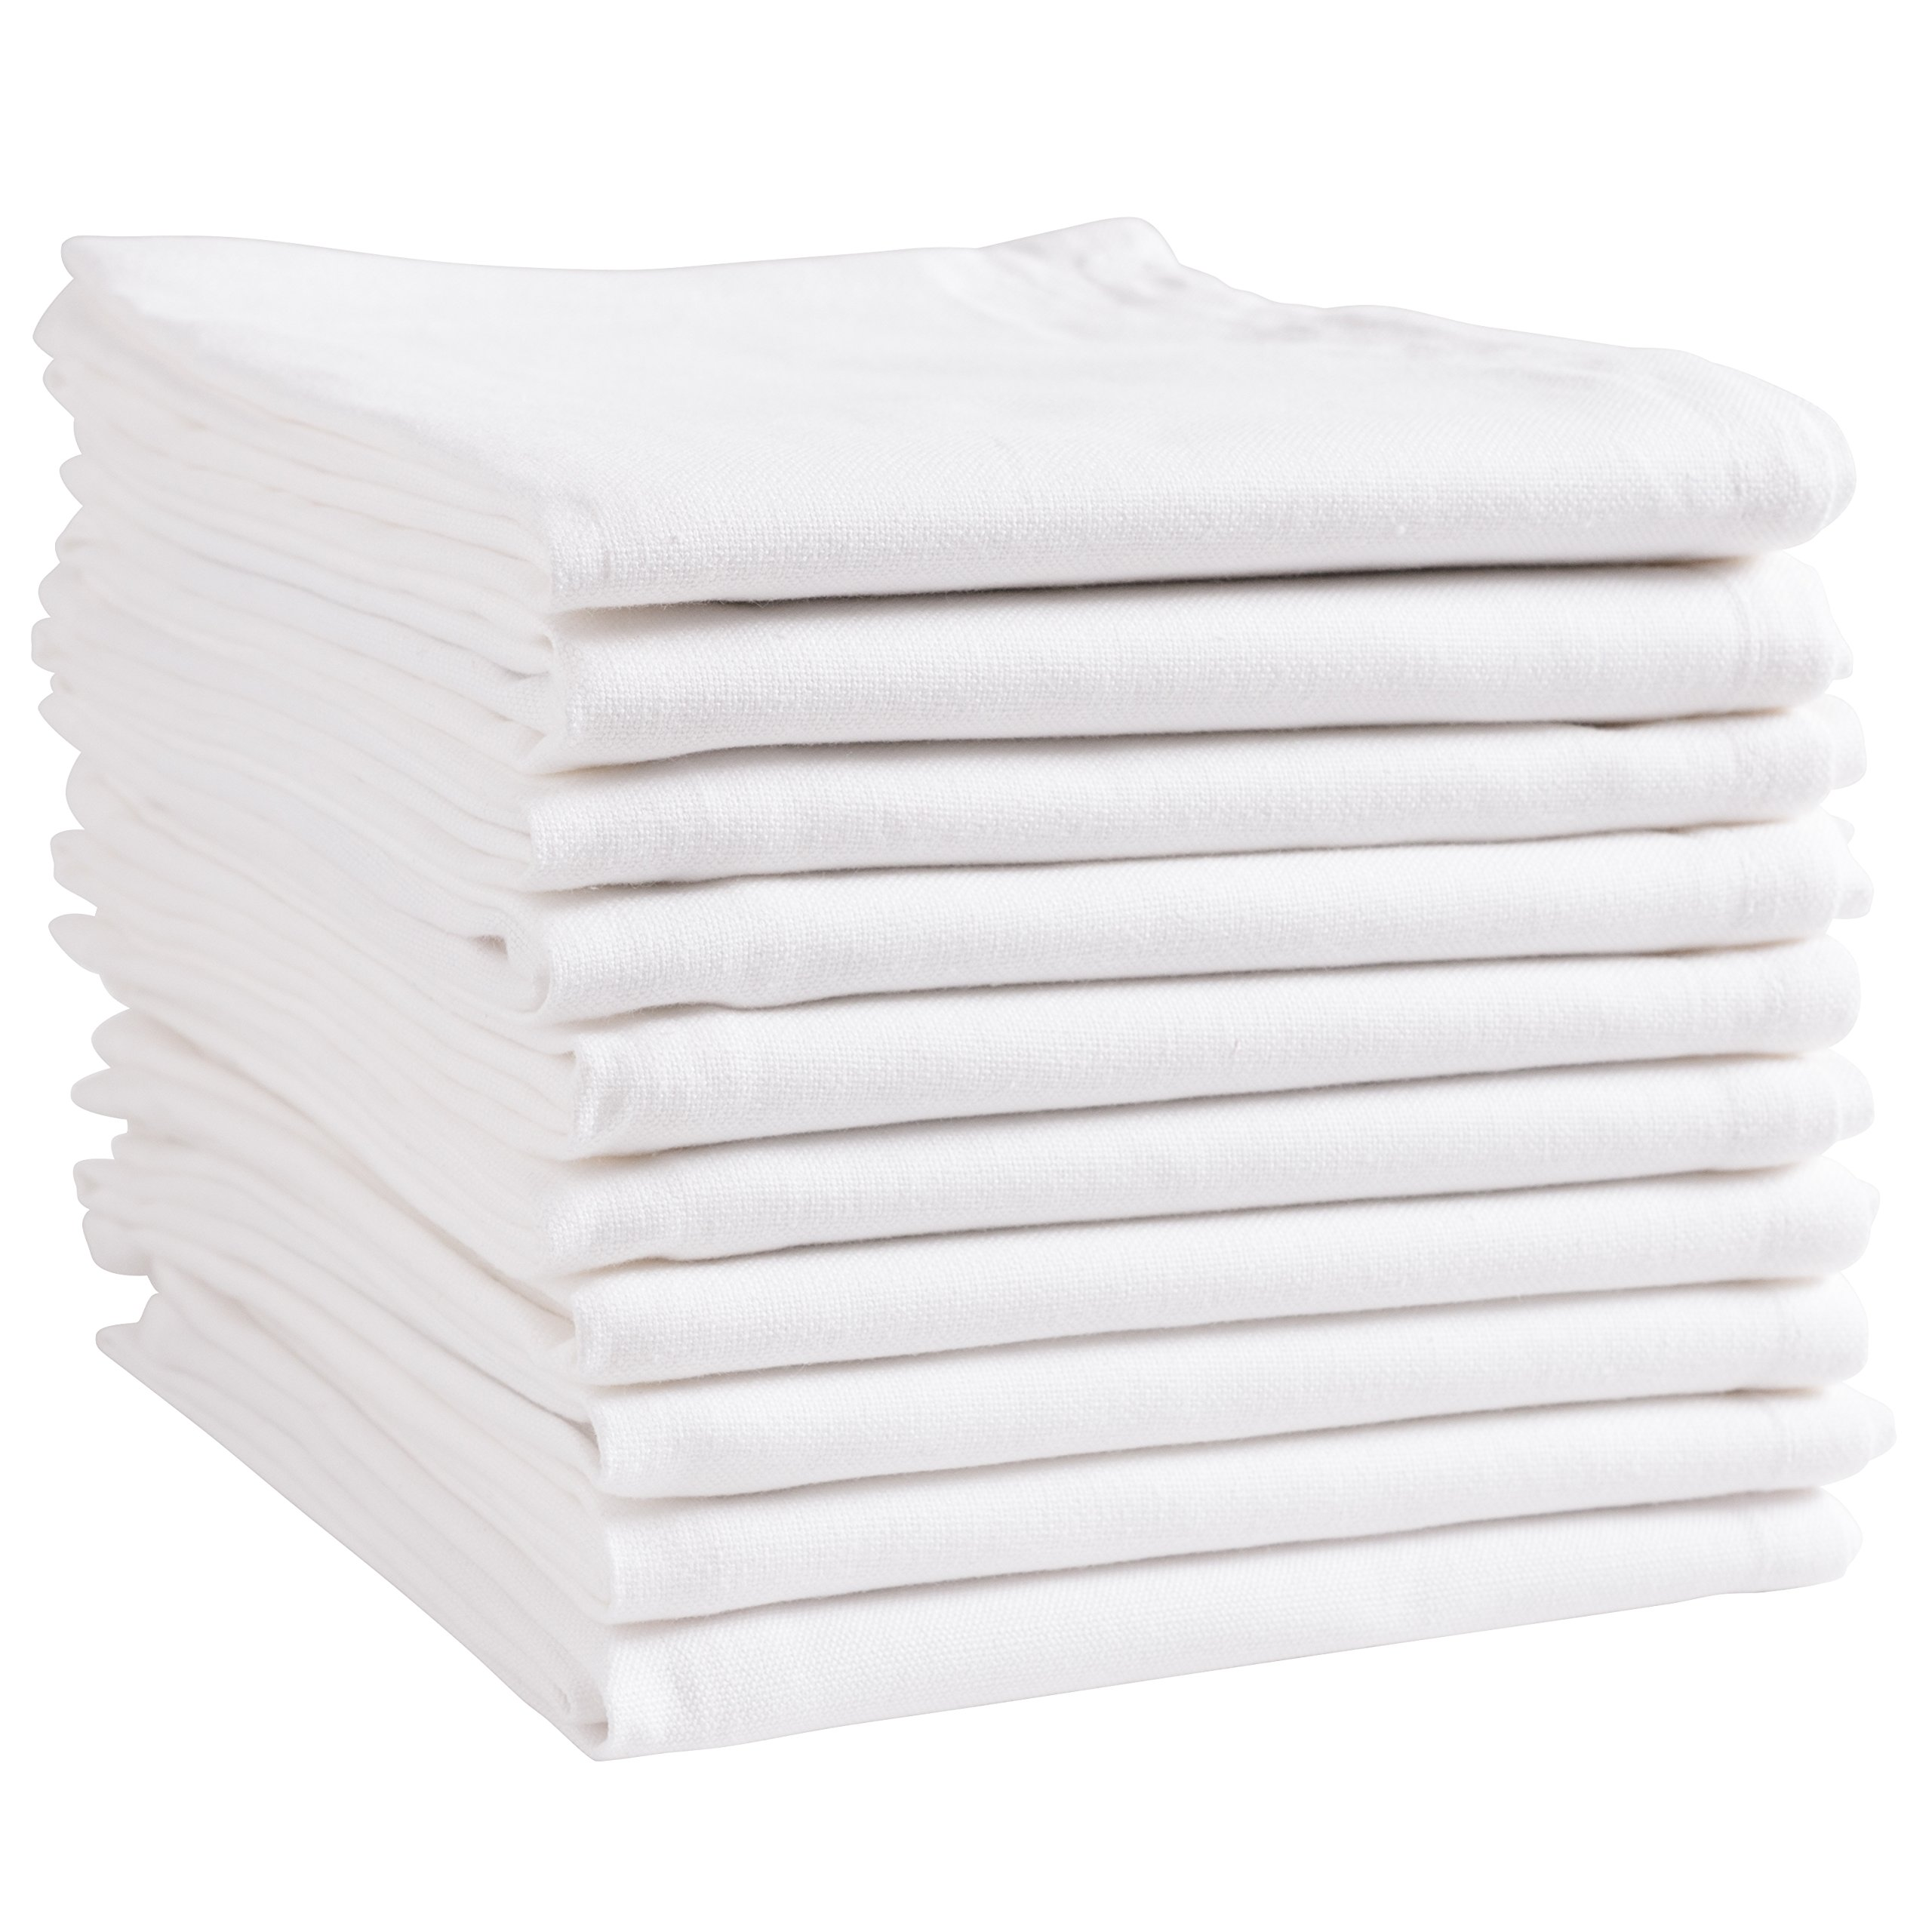 KAF Home White Kitchen Towels, 10 pack, 100% Cotton - 20 x 30, Soft and Functional Multi-purpose, Baking, Cooking, Cleaning, Printing, Monogramming, and Embroidery by KAF Home (Image #1)